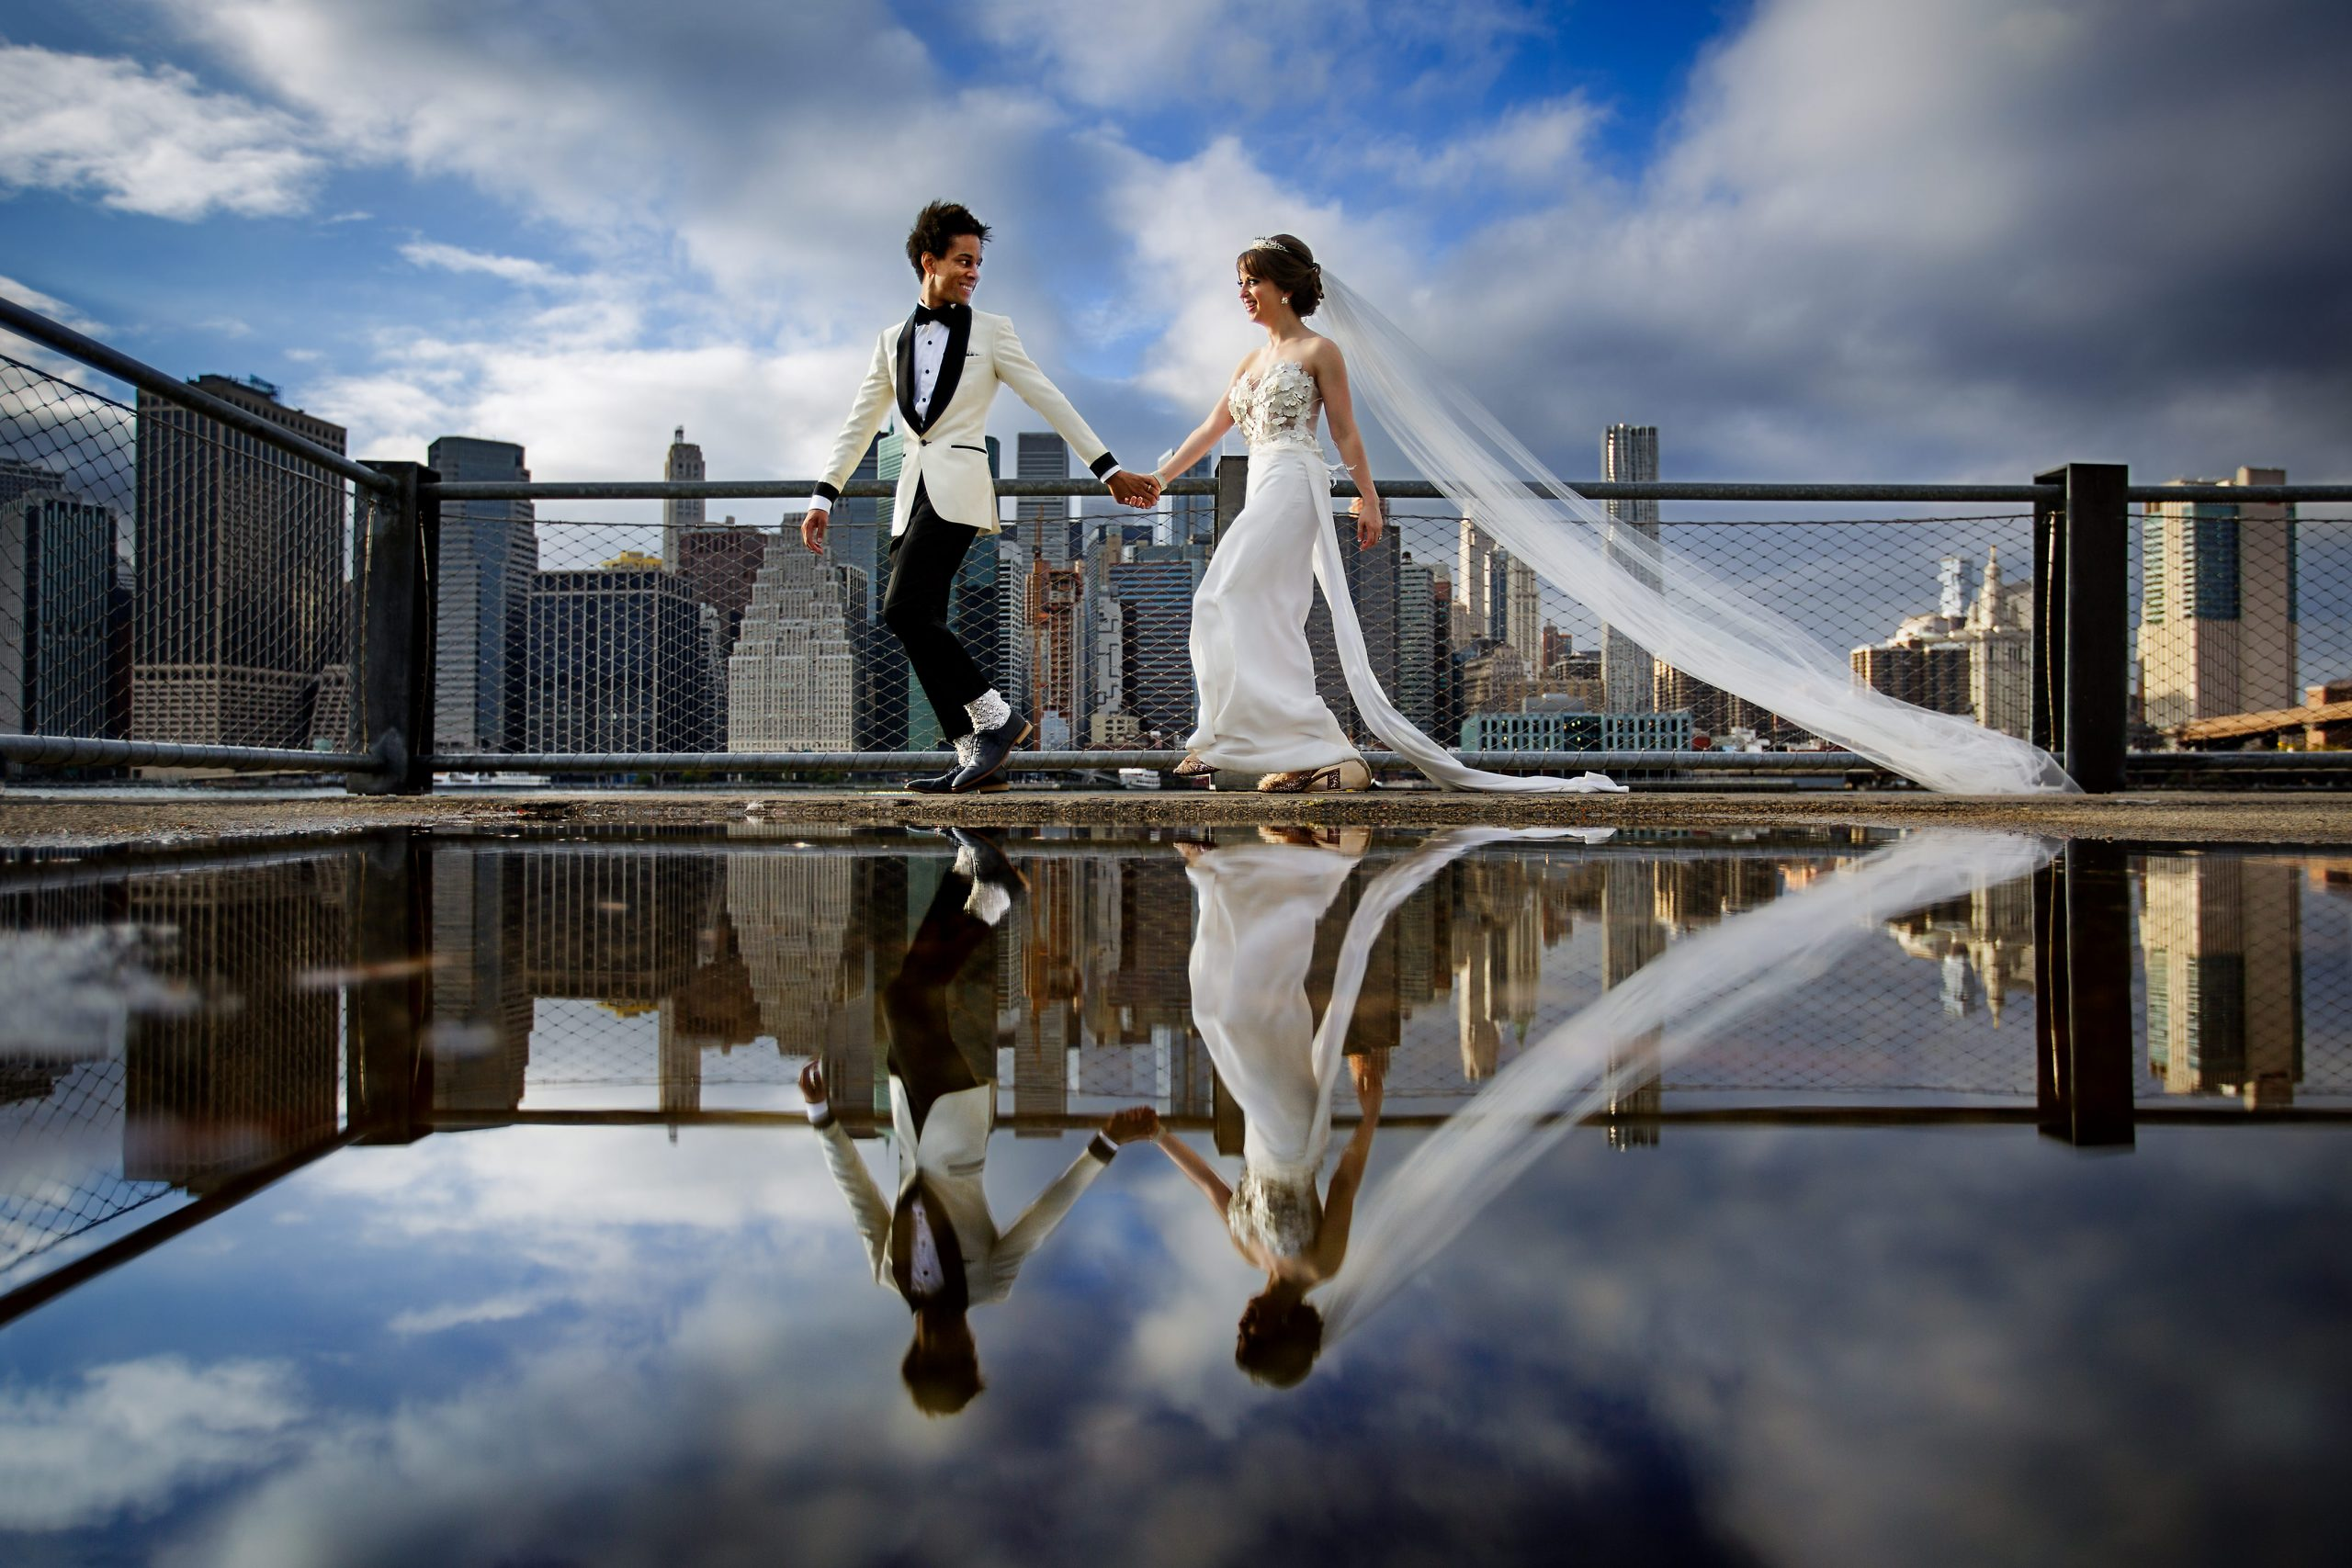 Groom holding bride's hand as they walk across city rooftop which is also reflected by a puddle